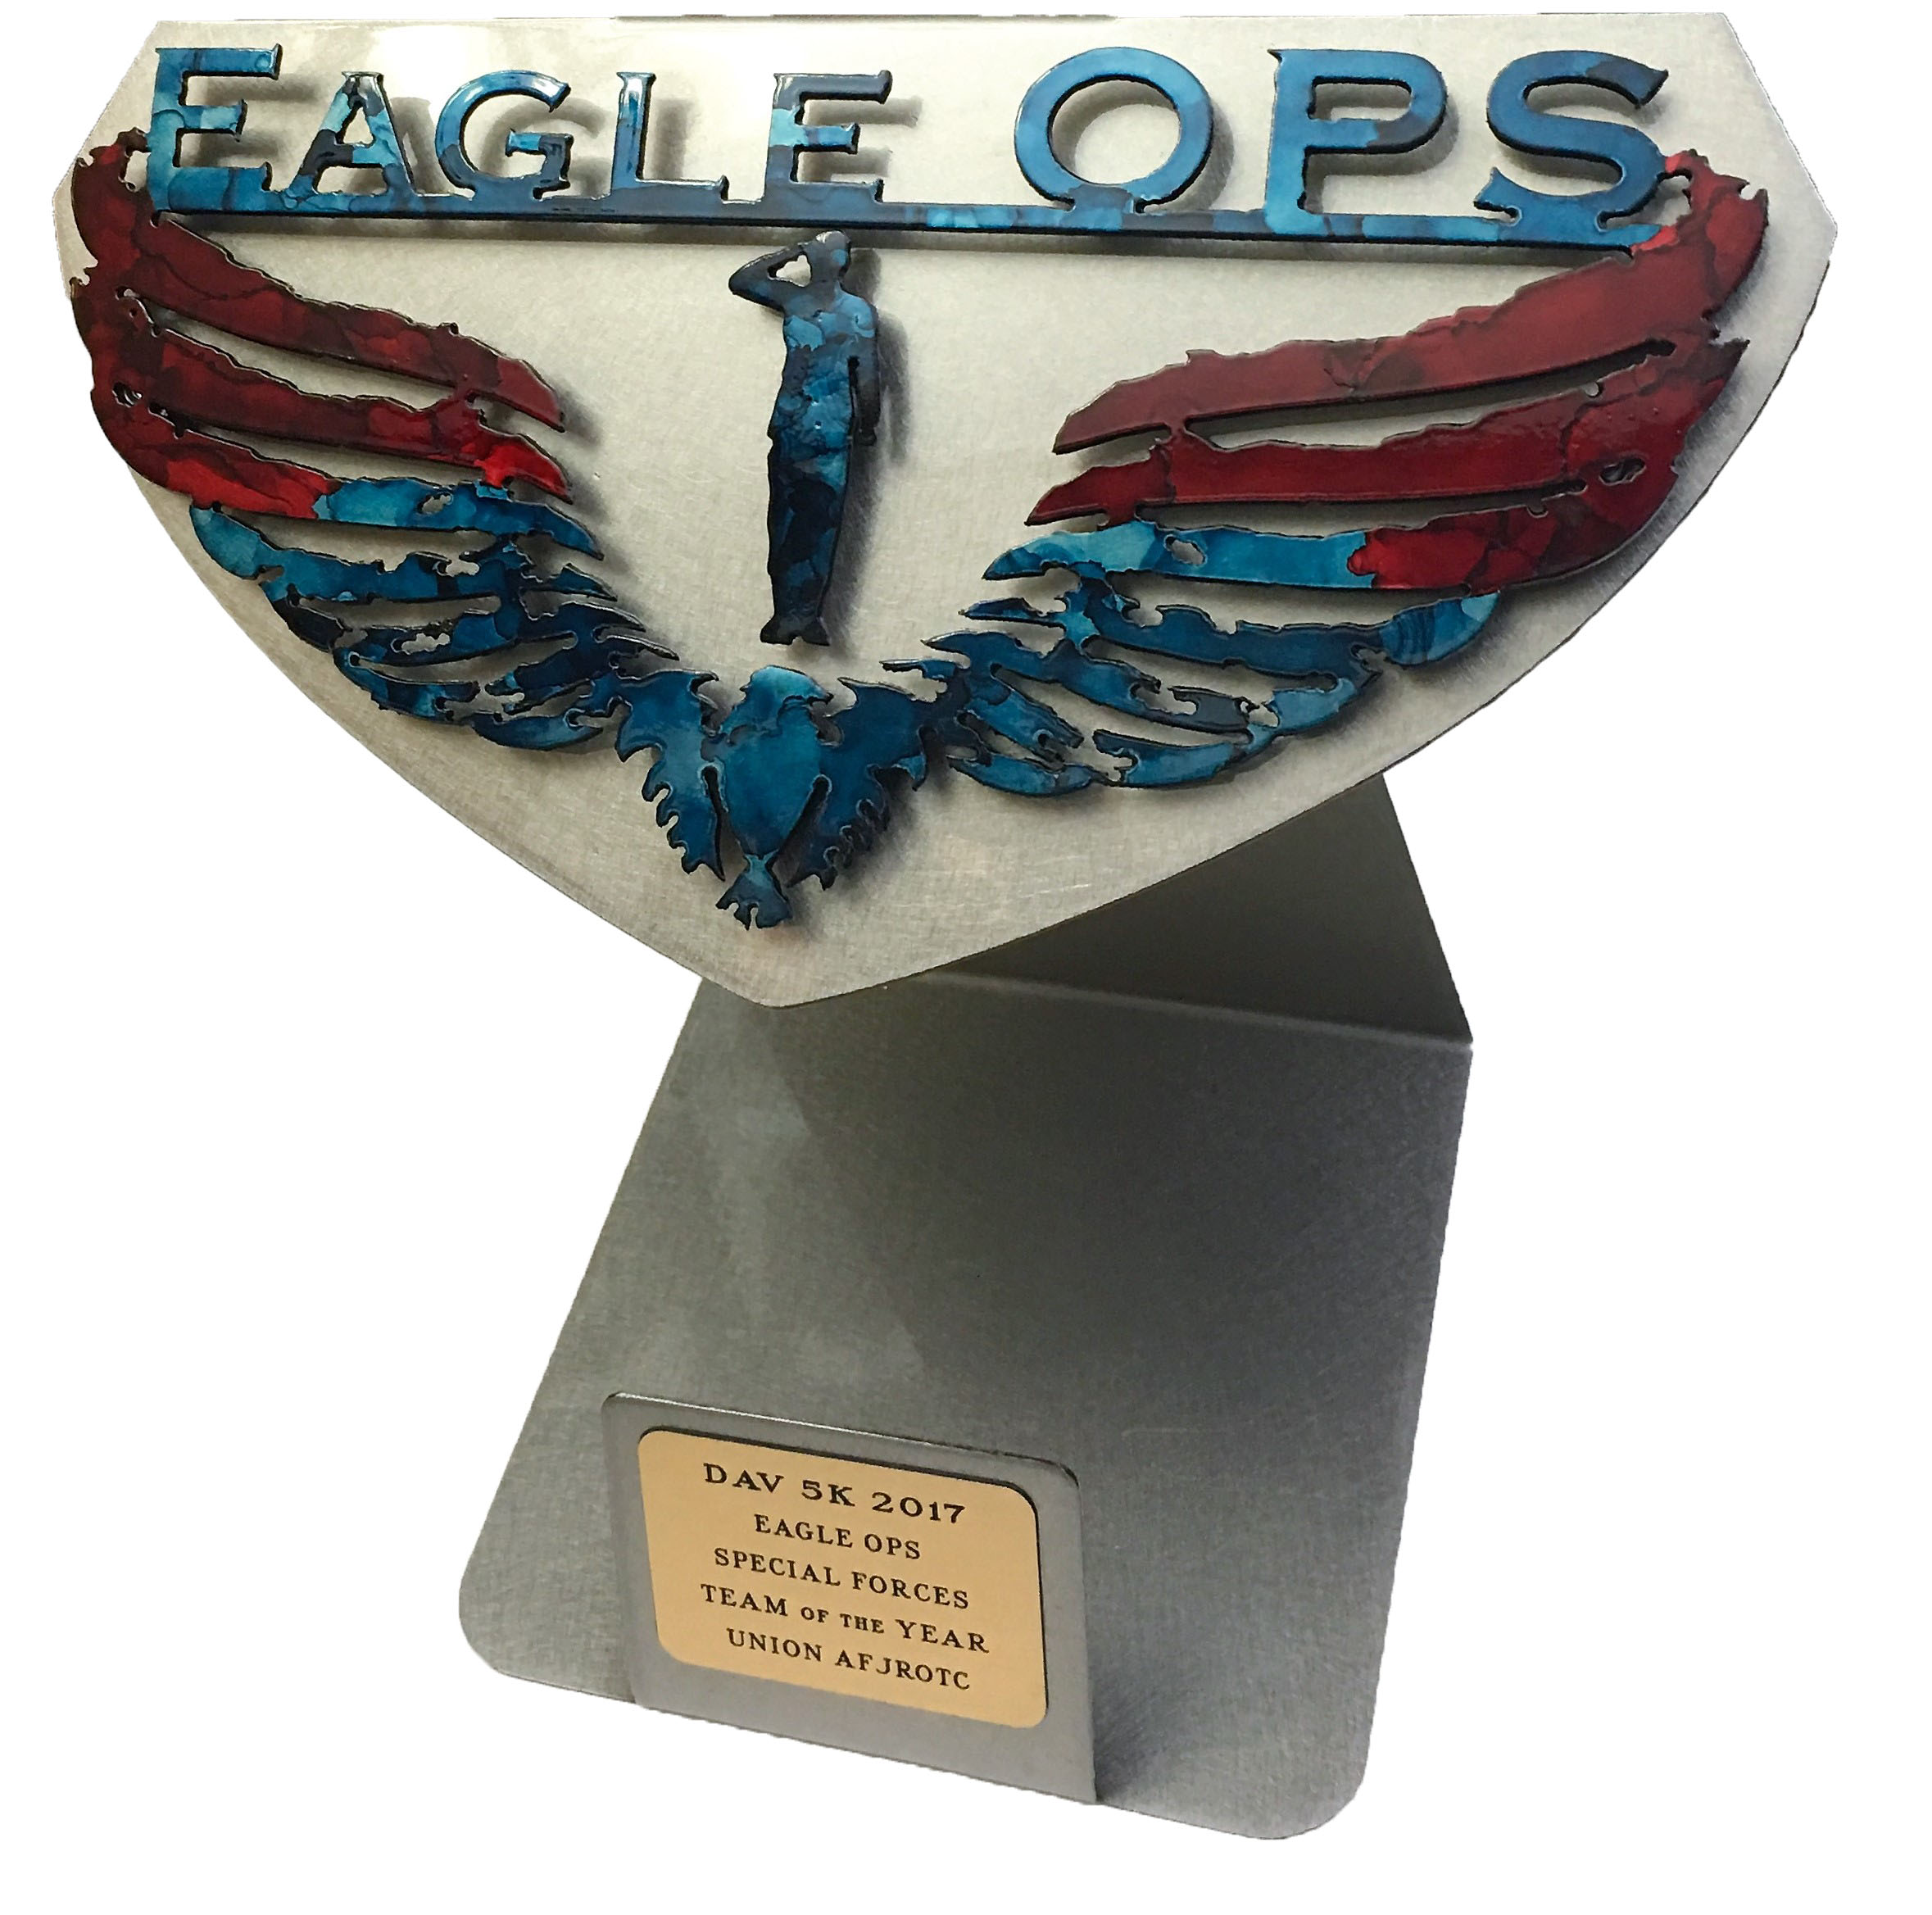 EagleOps_Custom_MetalWork_SmallBusiness_